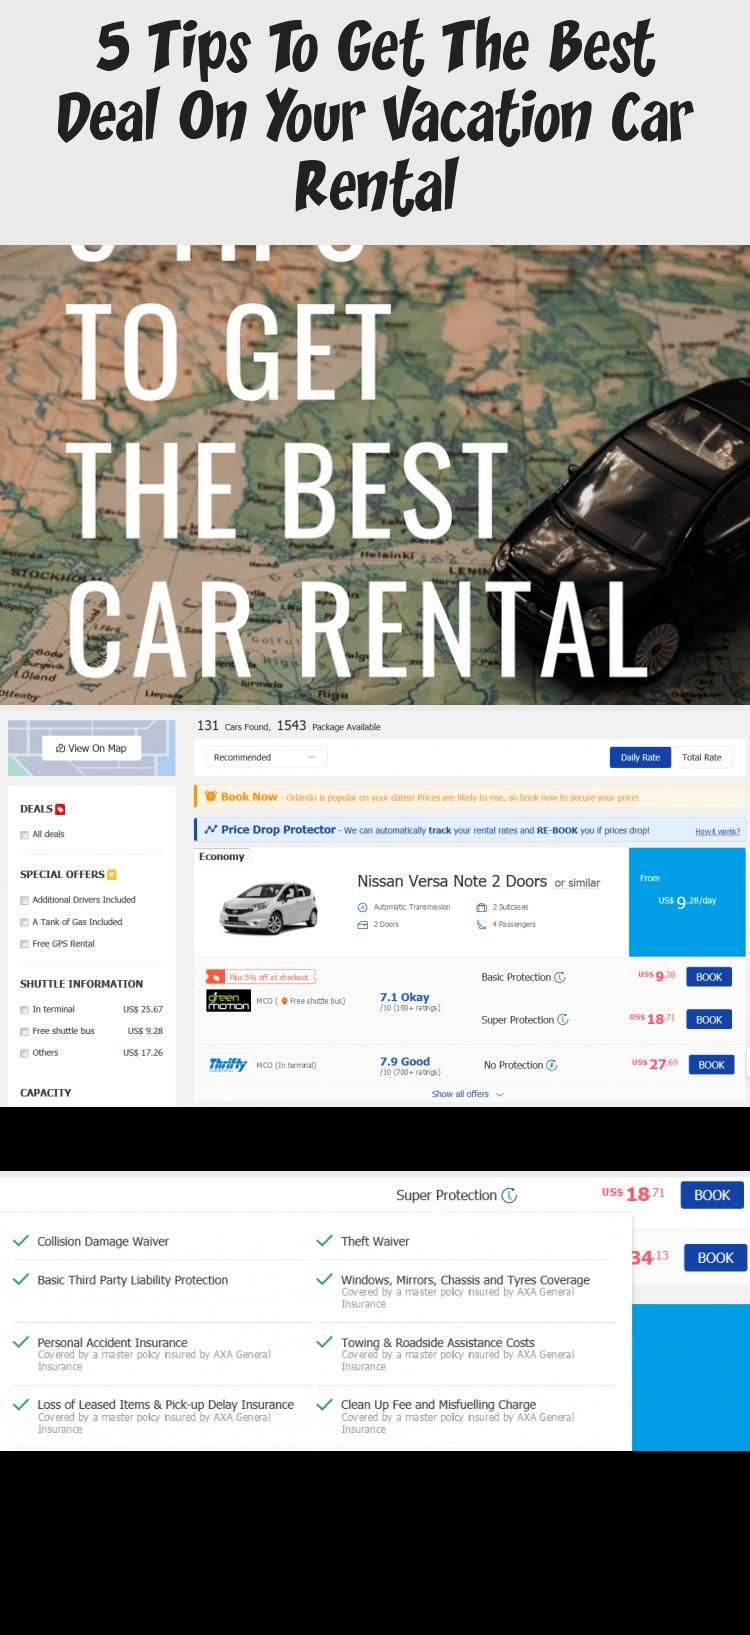 5 tips to get the best deal on your vacation car rental in